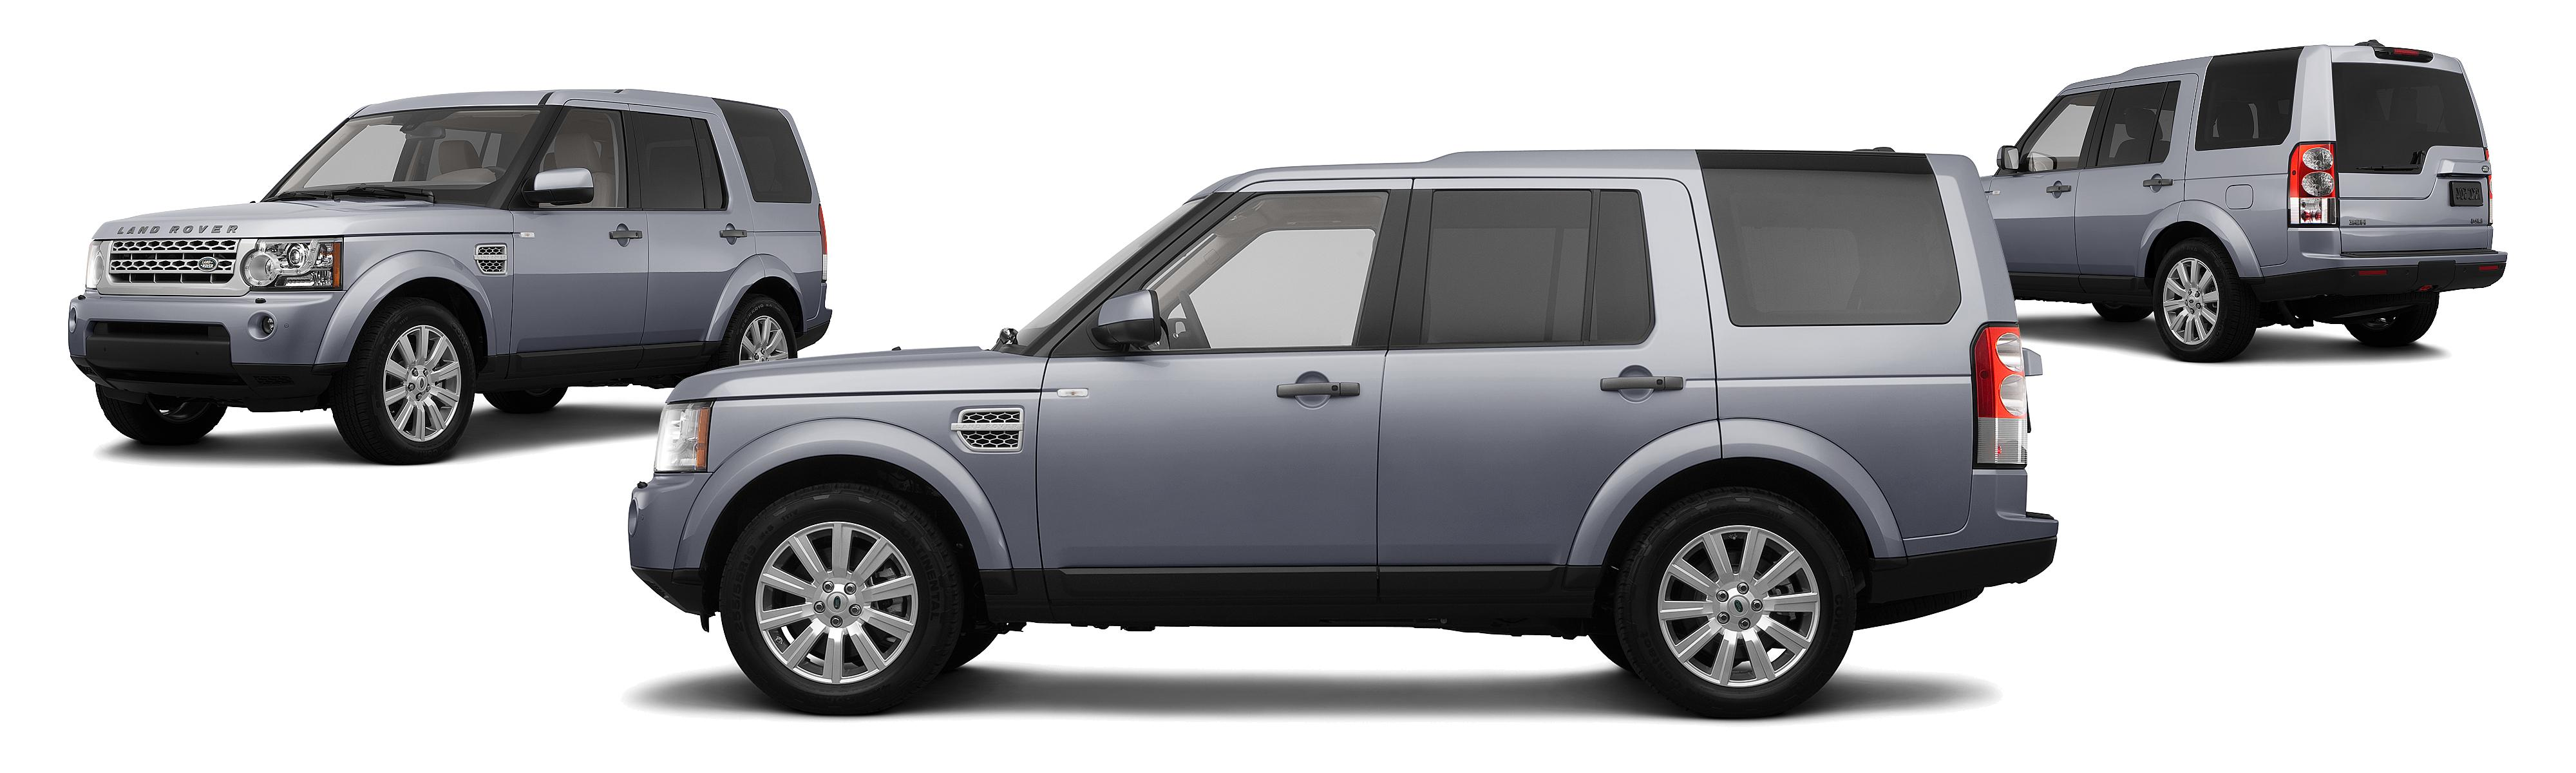 international price rover landrover overview land suv prices intl